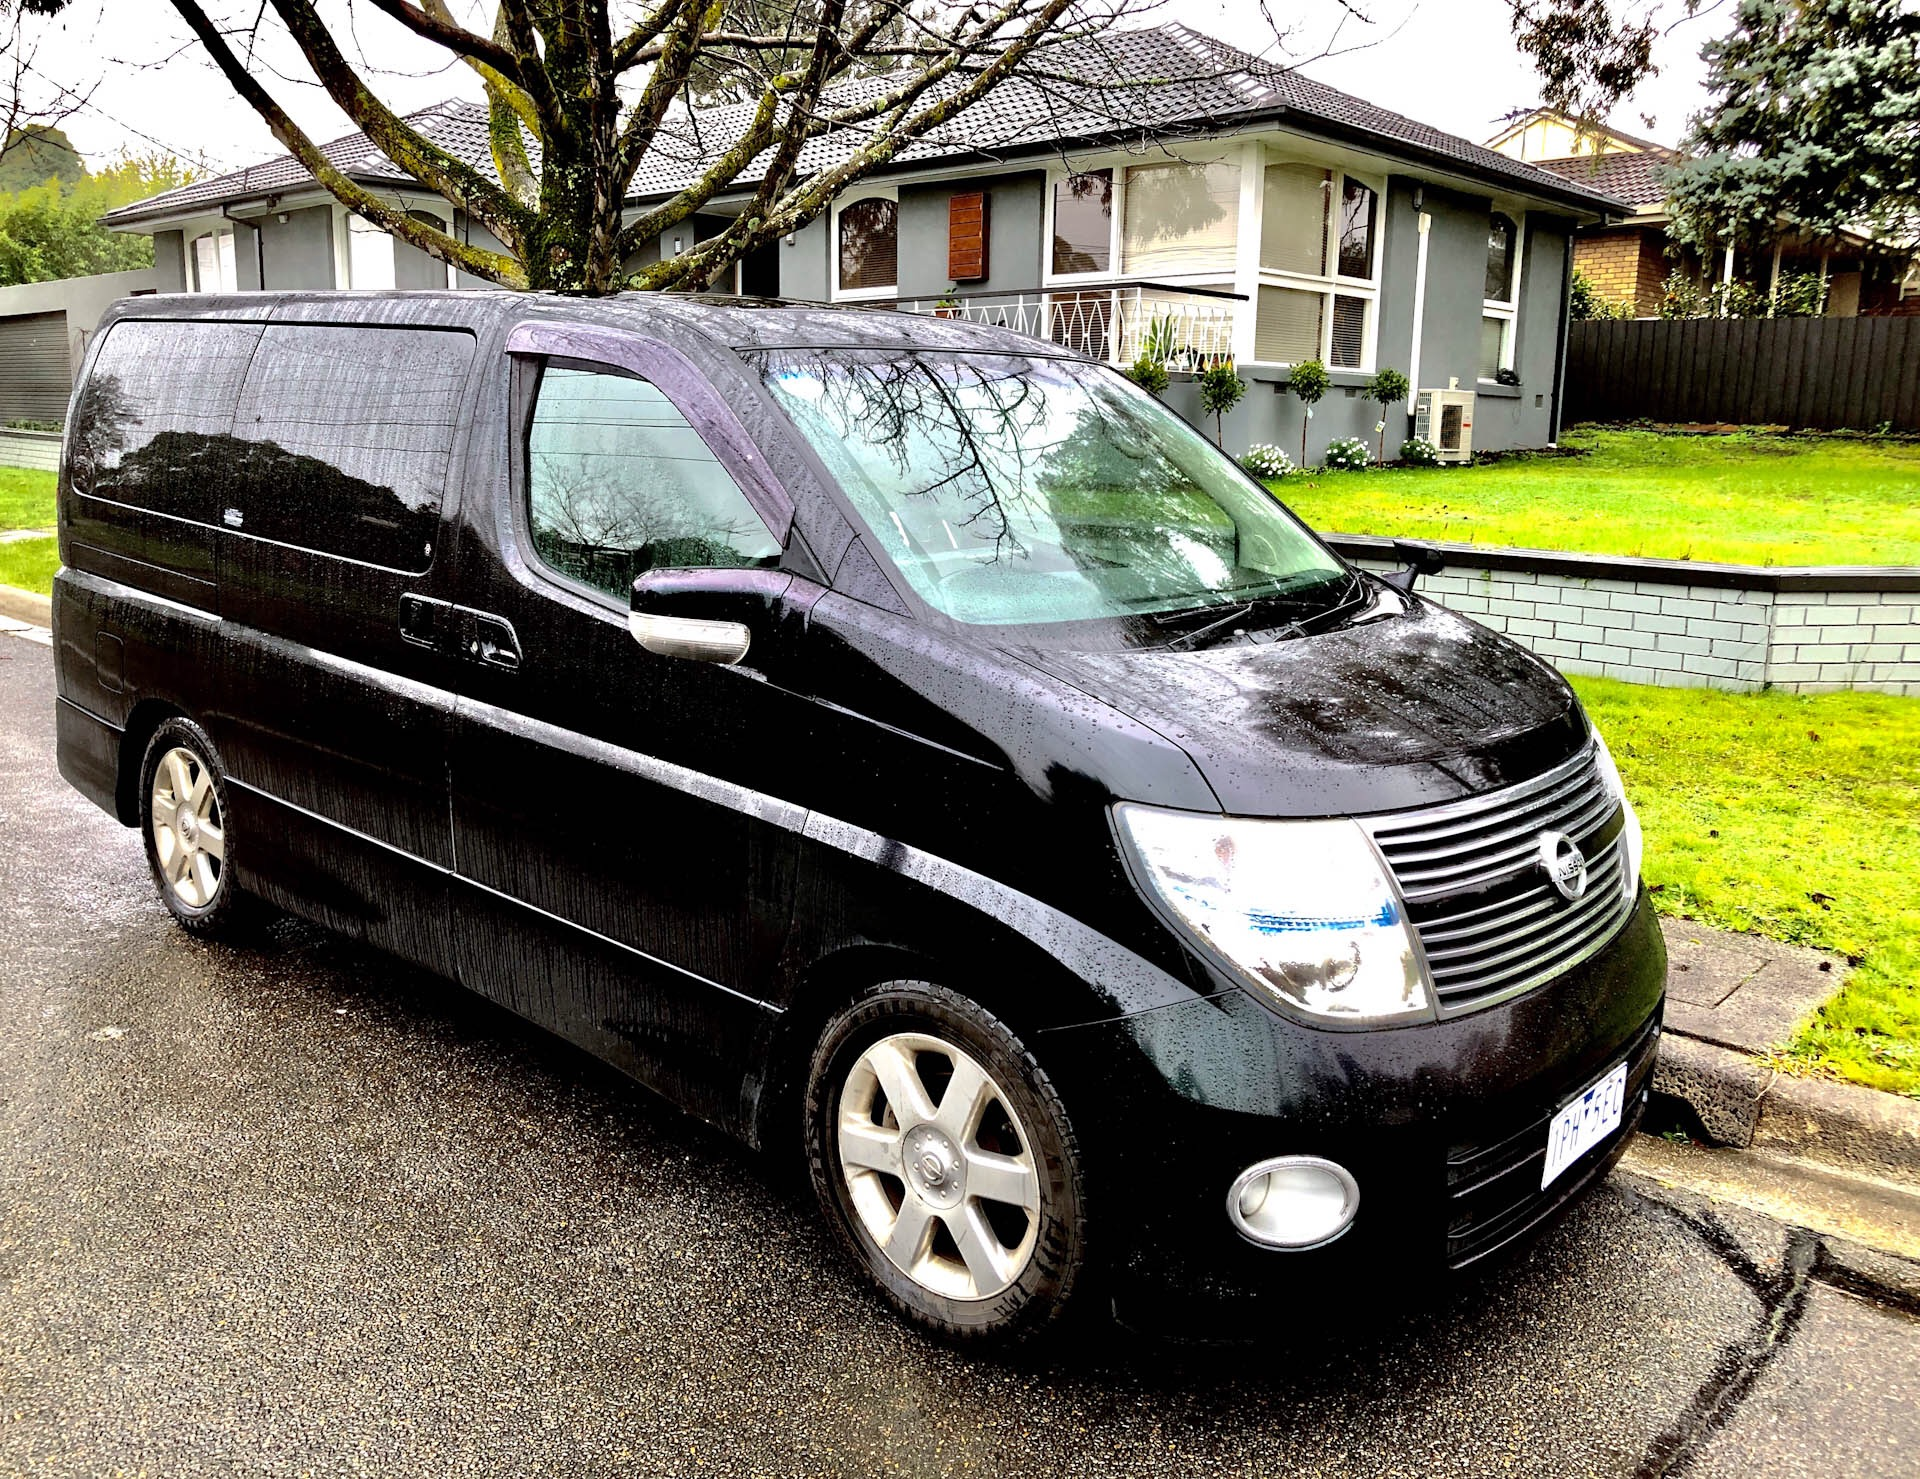 Picture of Don's 2009 Nissan El grand